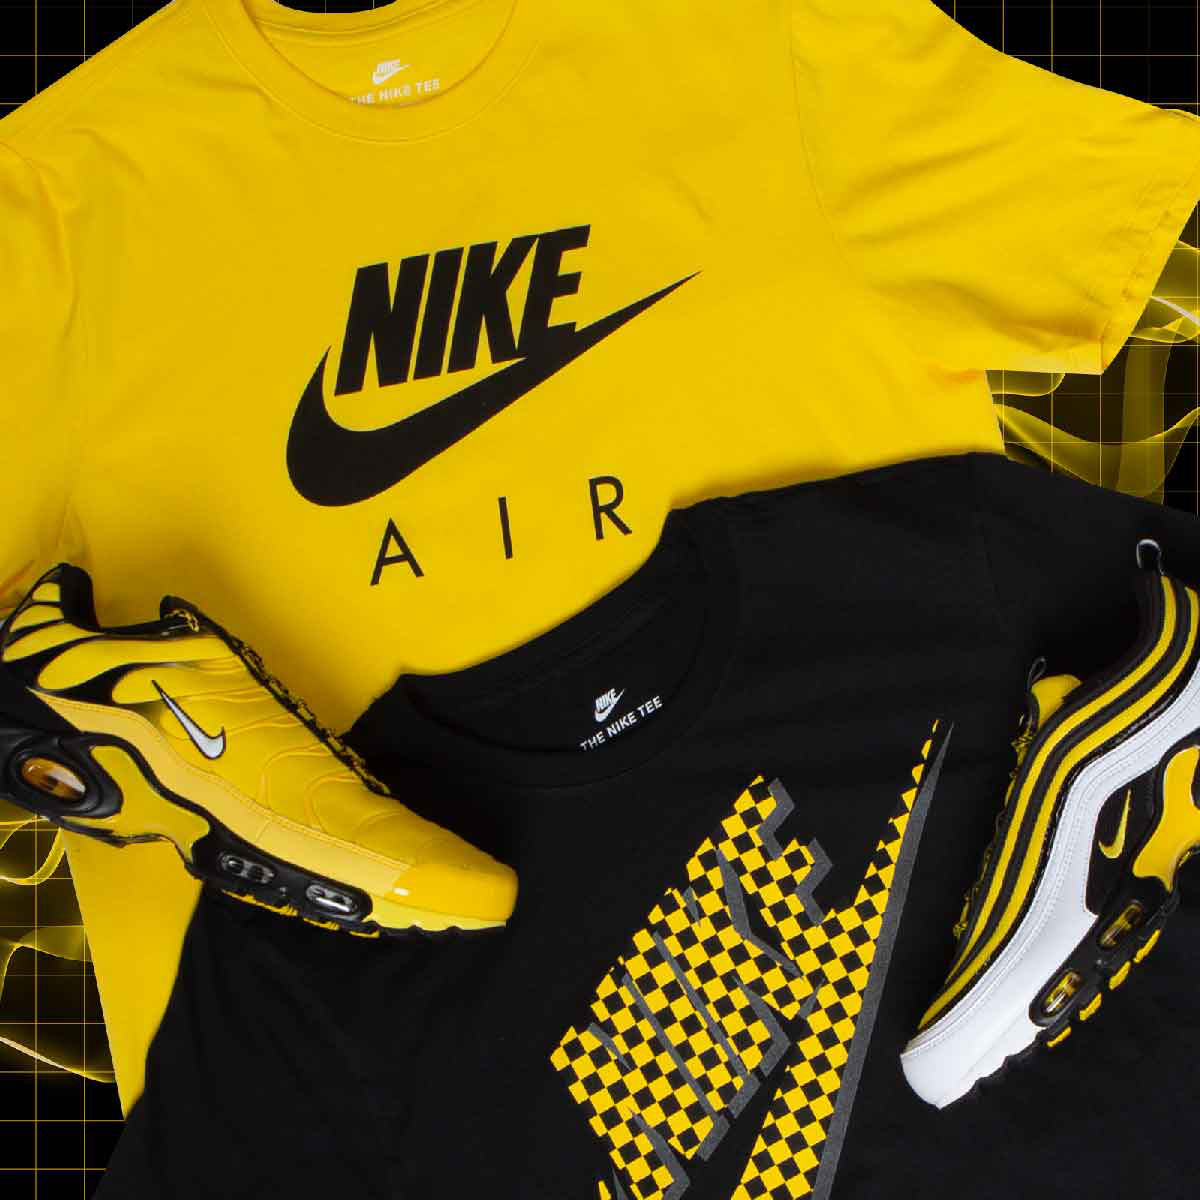 d07da105e1 Nike Air Max Frequency Sneaker Tee Shirts